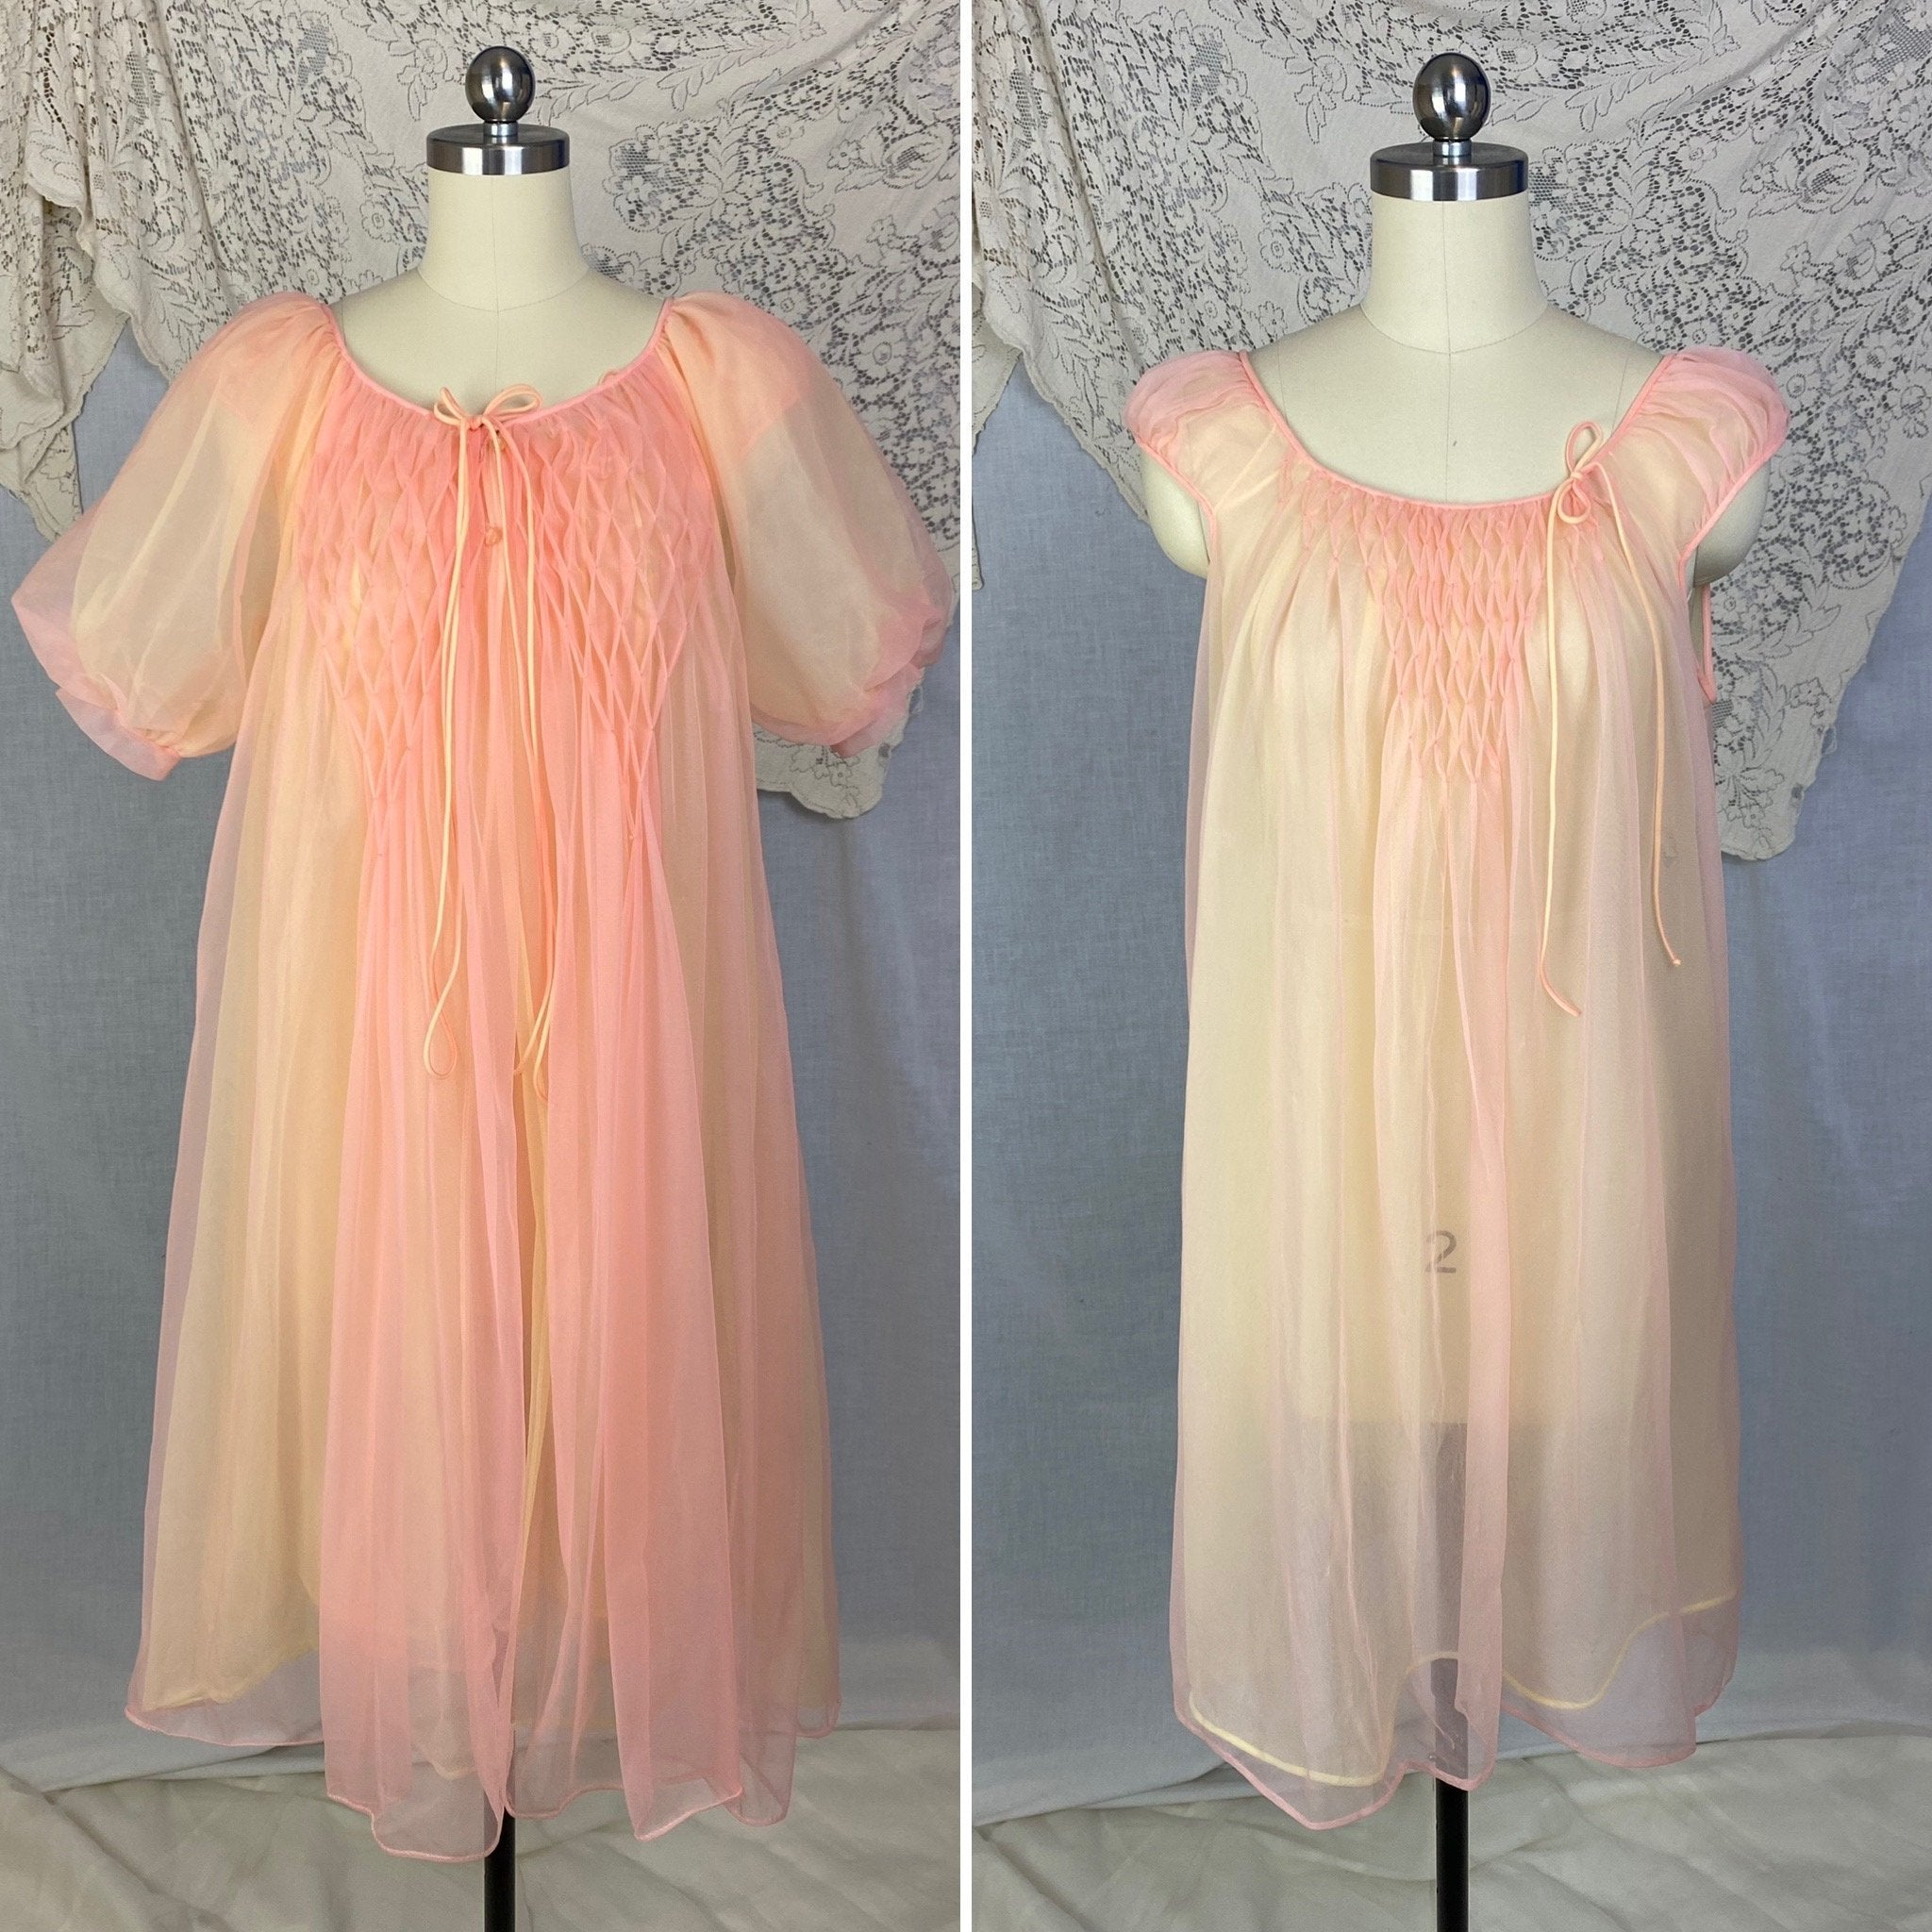 Vintage 1960's Peignoir Set | Tangerine & Yellow Nylon Chiffon with Honeycomb Smocking | Size M, LG | Miss Elaine - Daggers & Dames